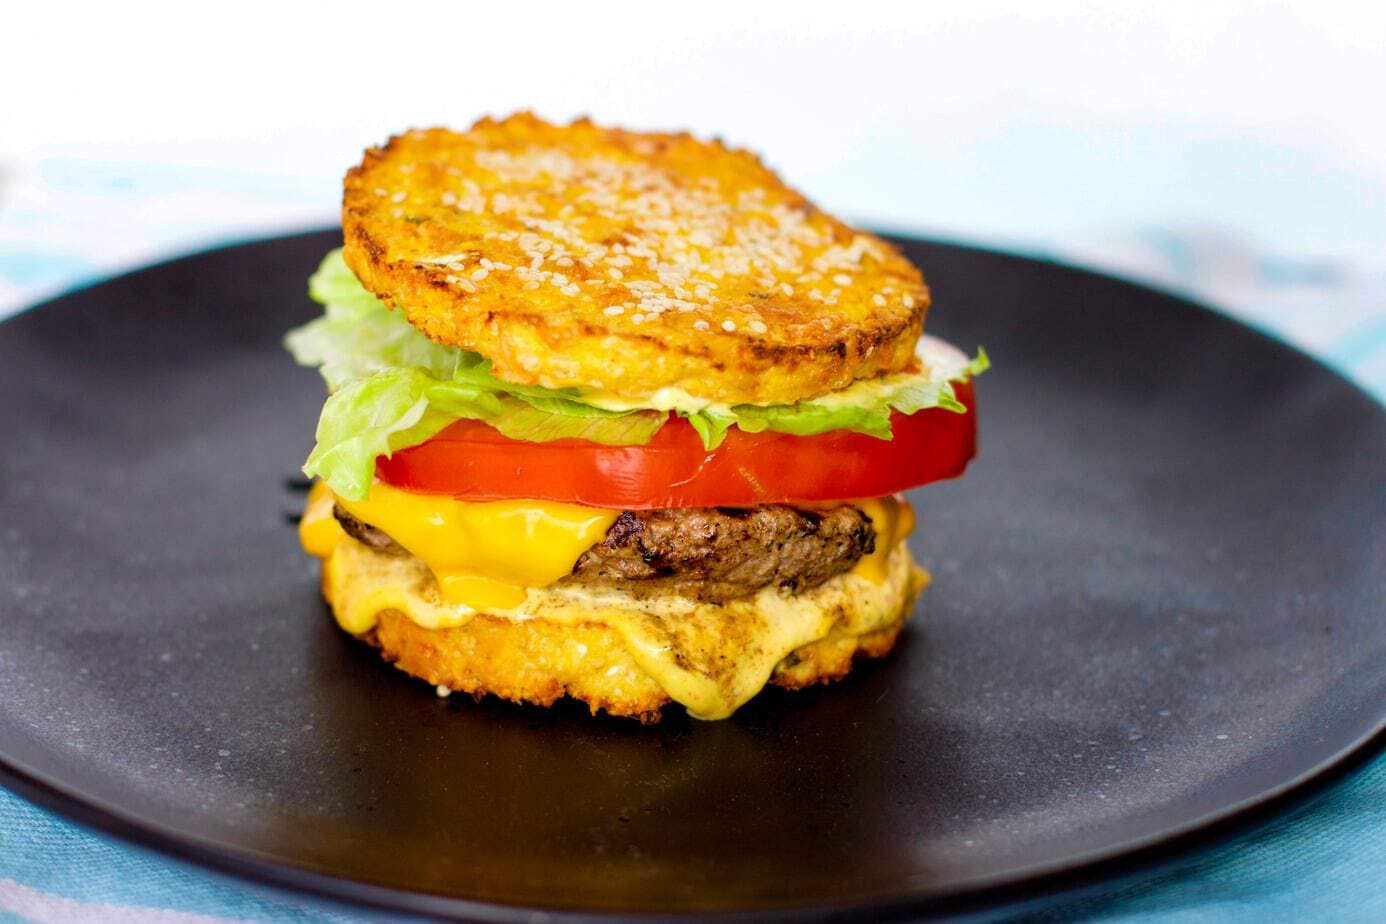 Mad Creations Keto Cauli Clubhouse Burger #ketogenicdiet #glutenfree #grainfree #sugarfree #ketoburger #LCHF